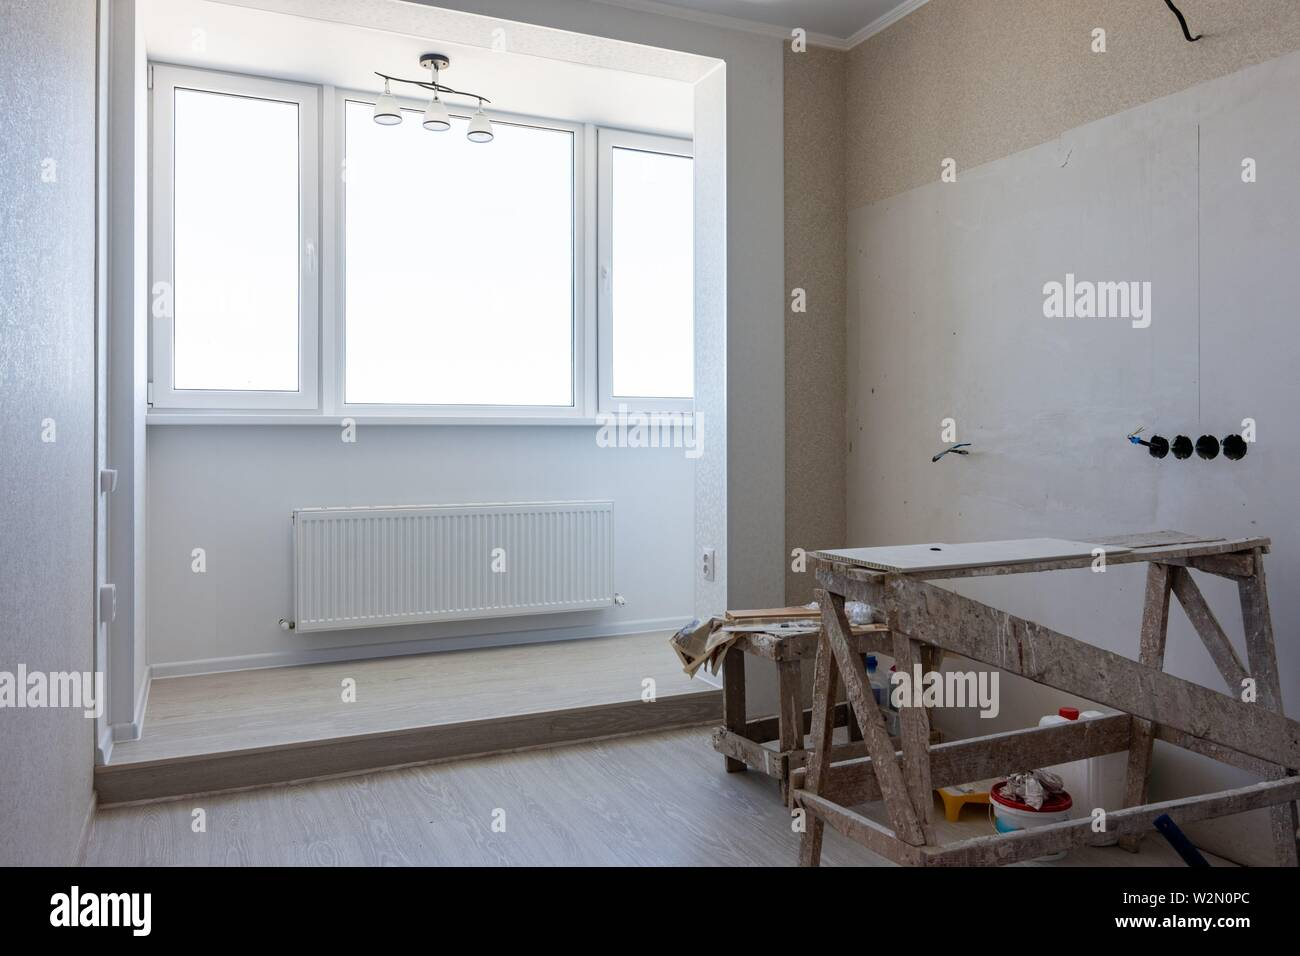 Repair and integration of loggias and rooms. - Stock Image